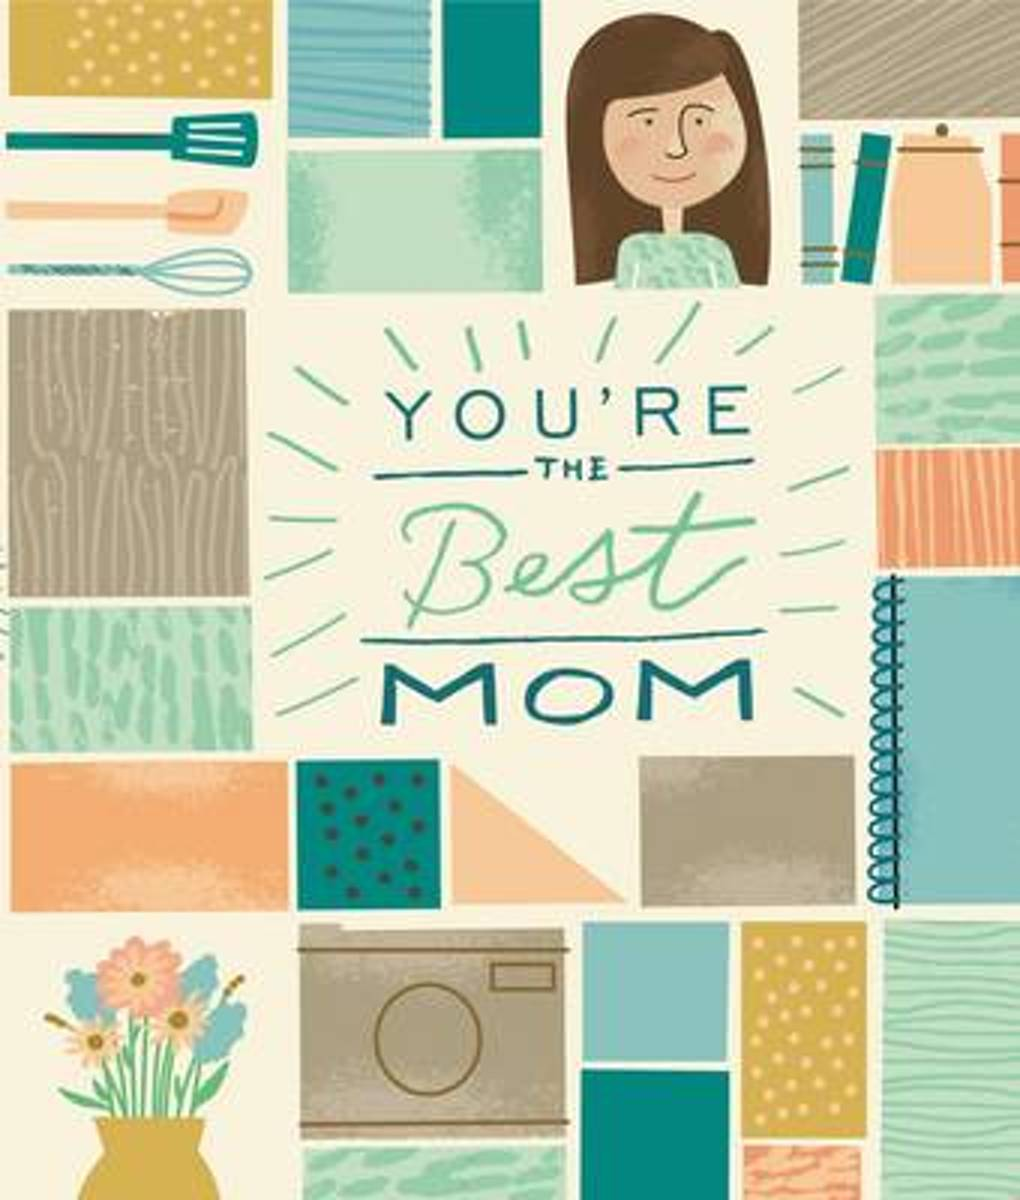 You're the Best Mom